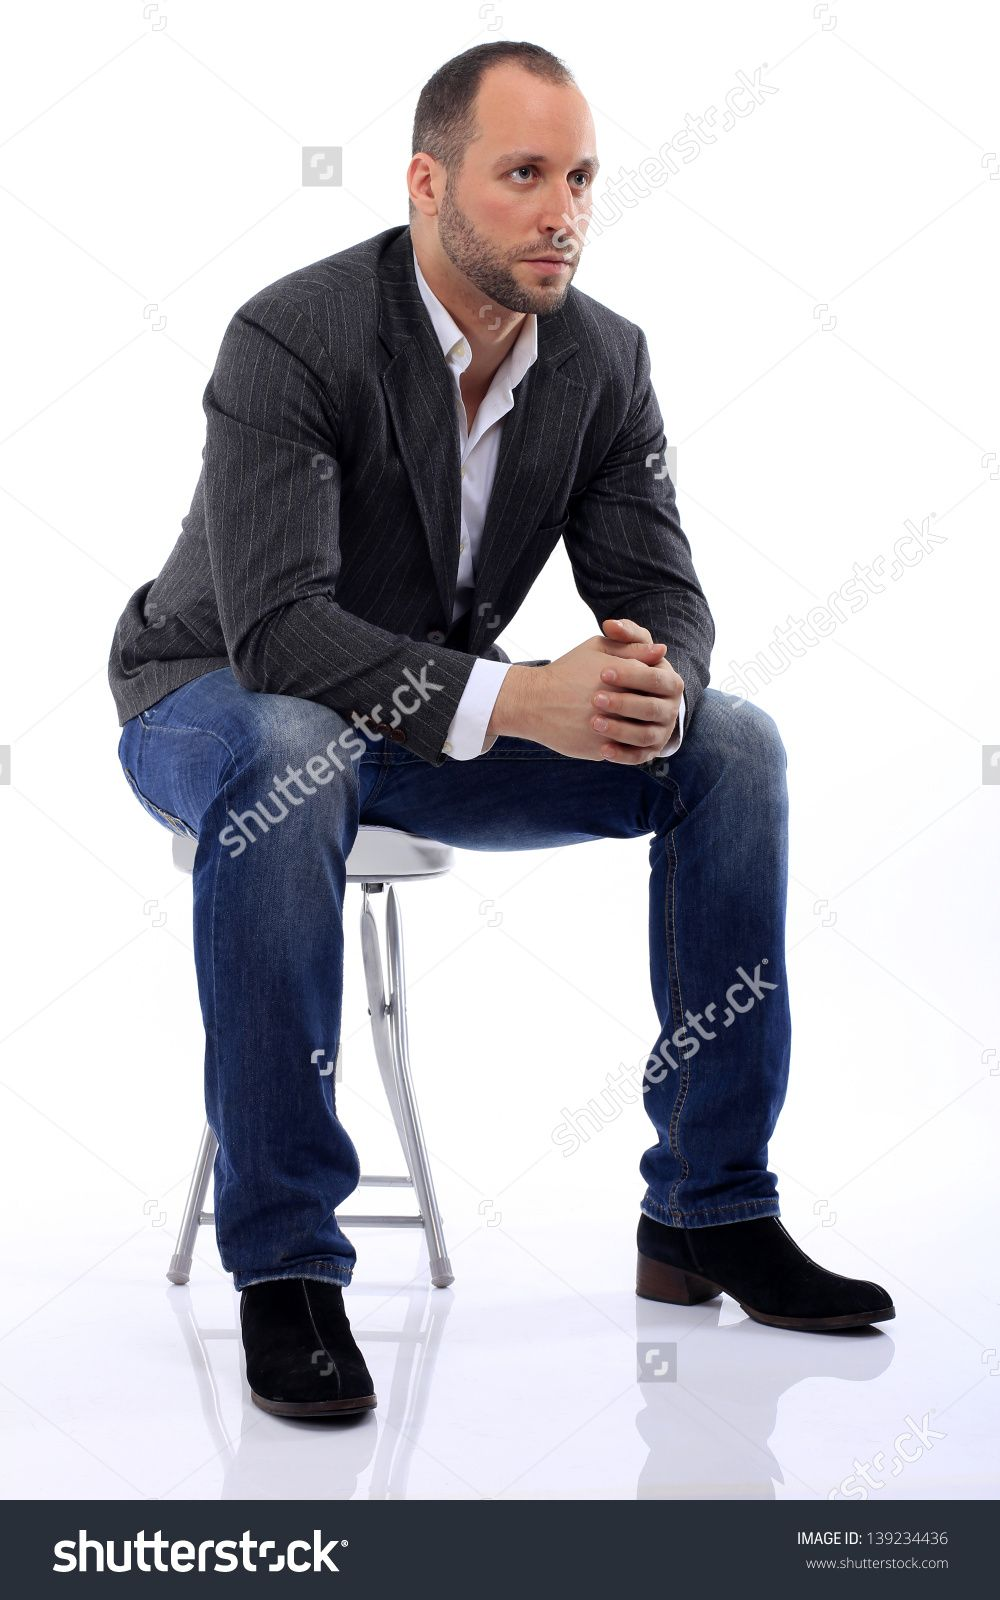 It's just a picture of Peaceful Male Sitting Poses Drawing